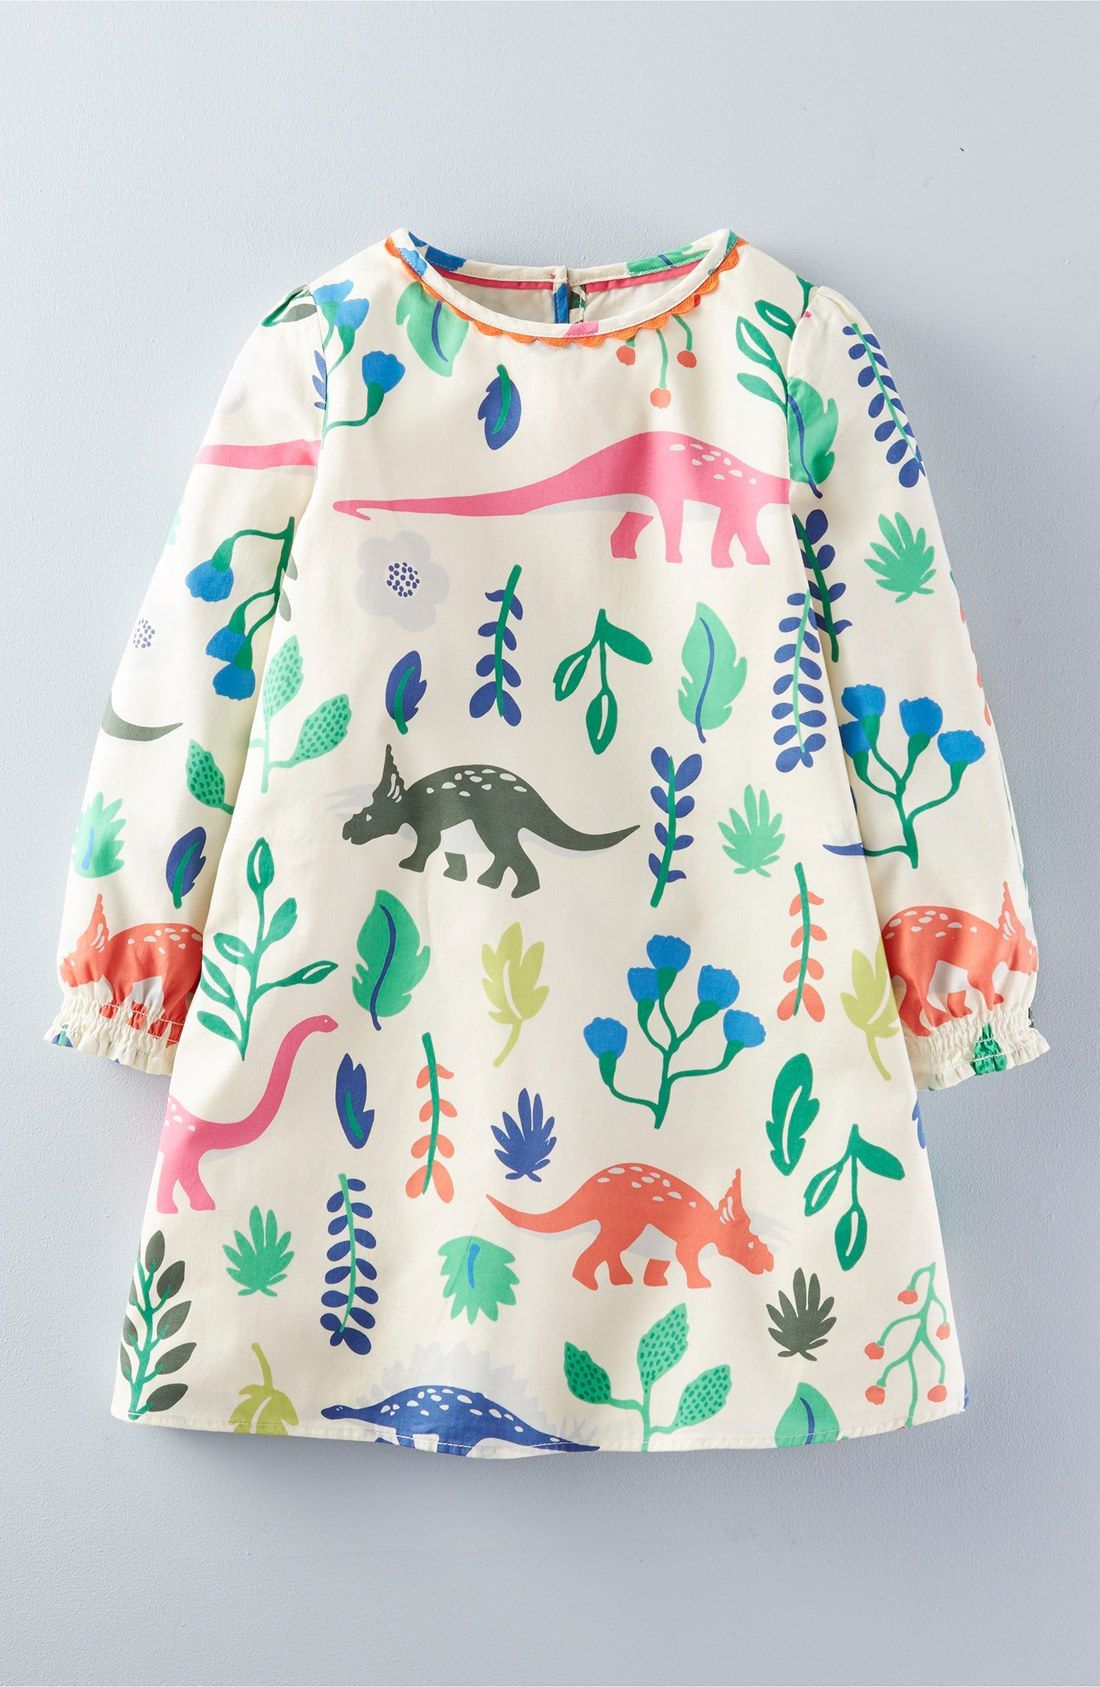 Clothing Mini Boden I Drool Over Their Dresses Expensive So